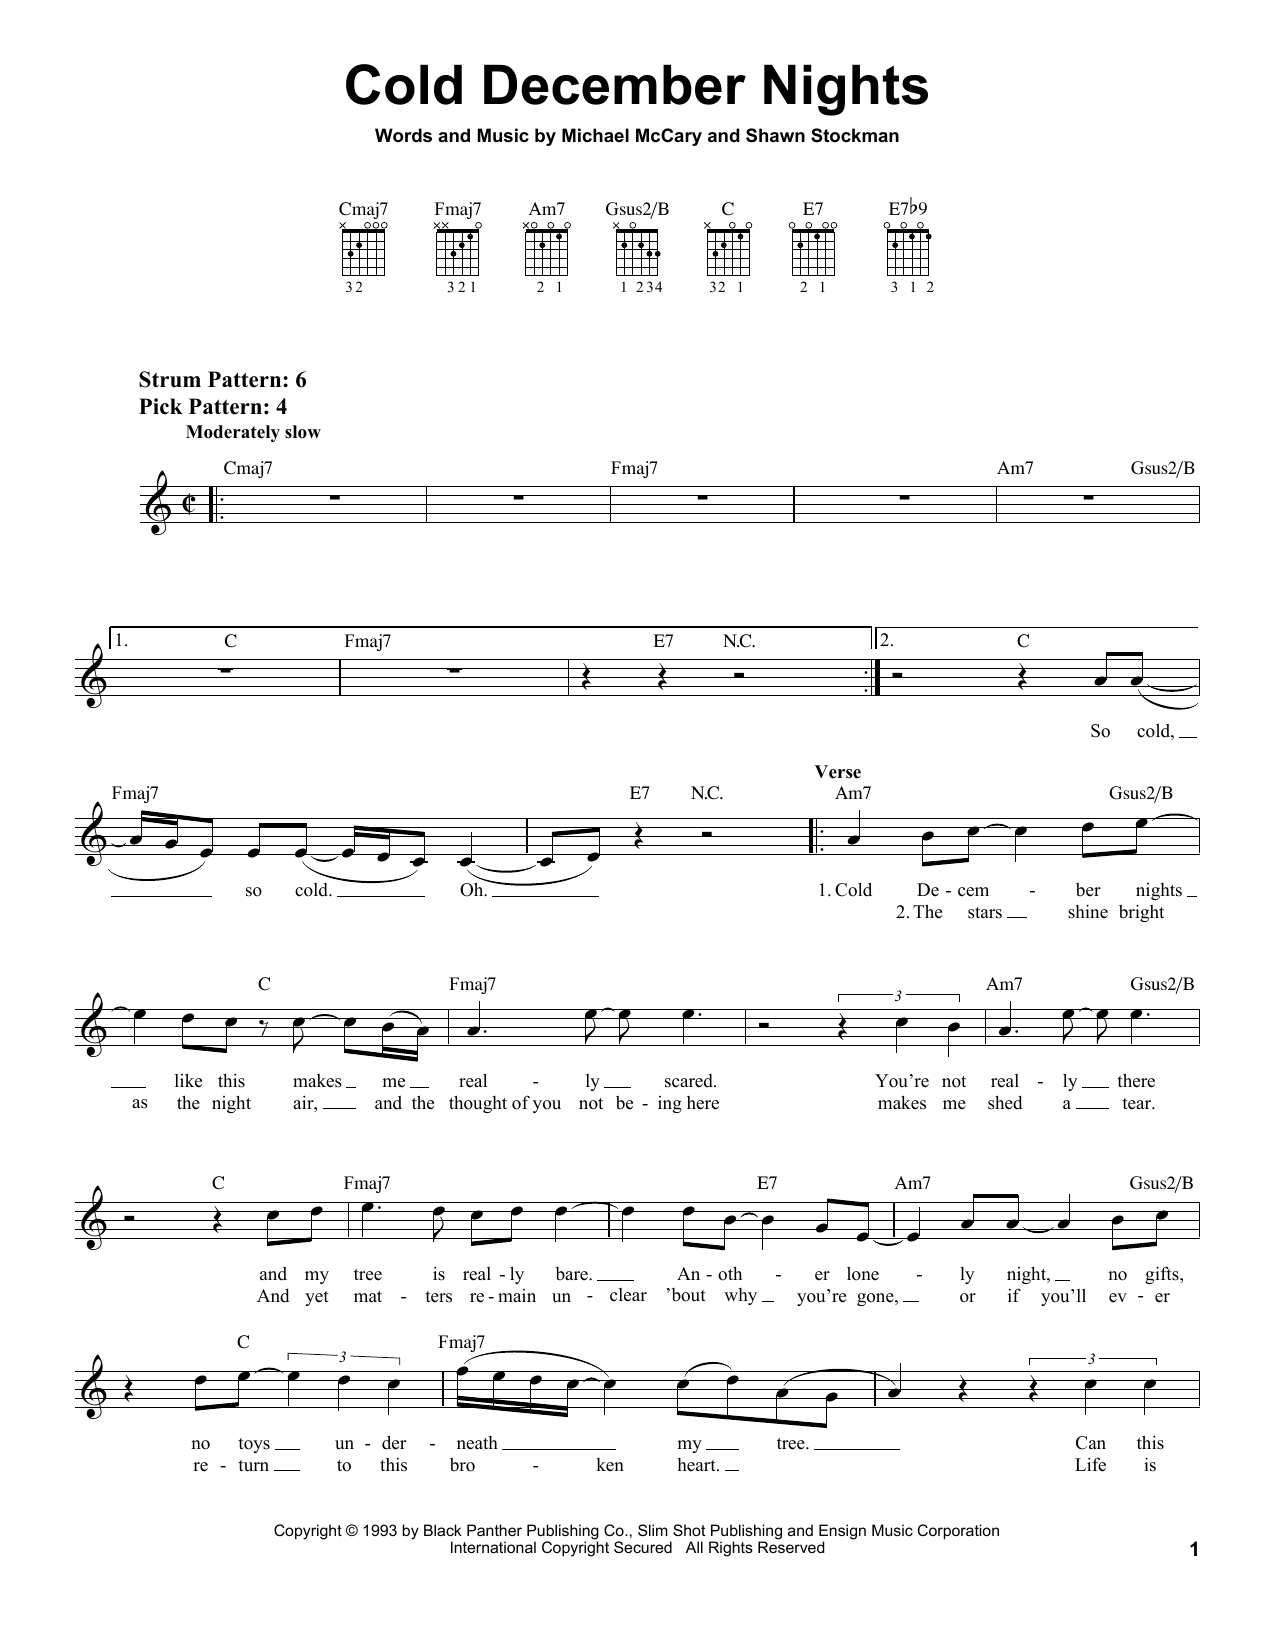 Boyz II Men Cold December Nights sheet music notes and chords - download printable PDF.